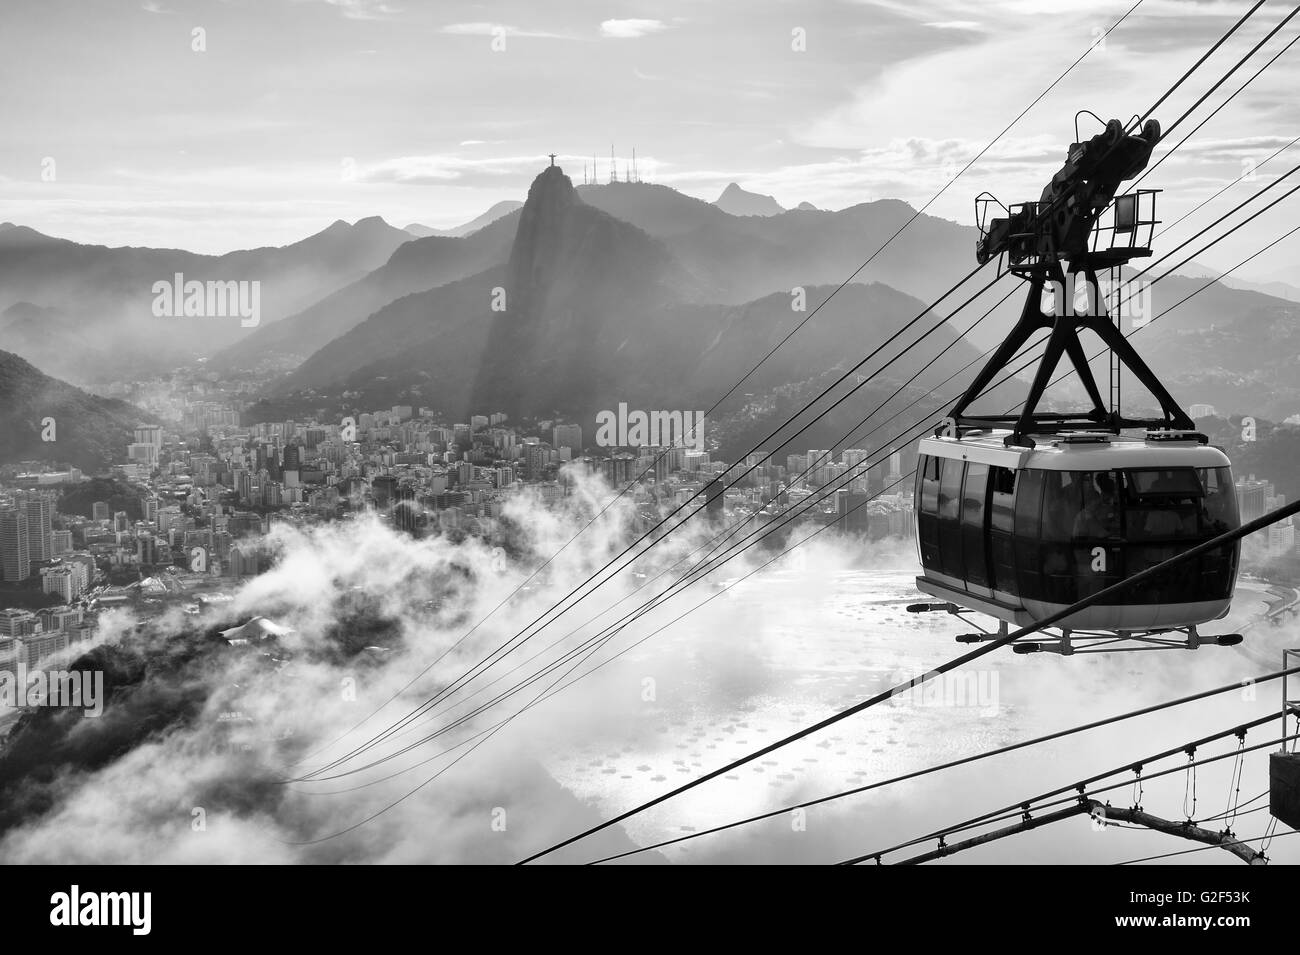 Black and white view of the misty city skyline of rio de janeiro brazil with a sugarloaf pao de acucar mountain cable car